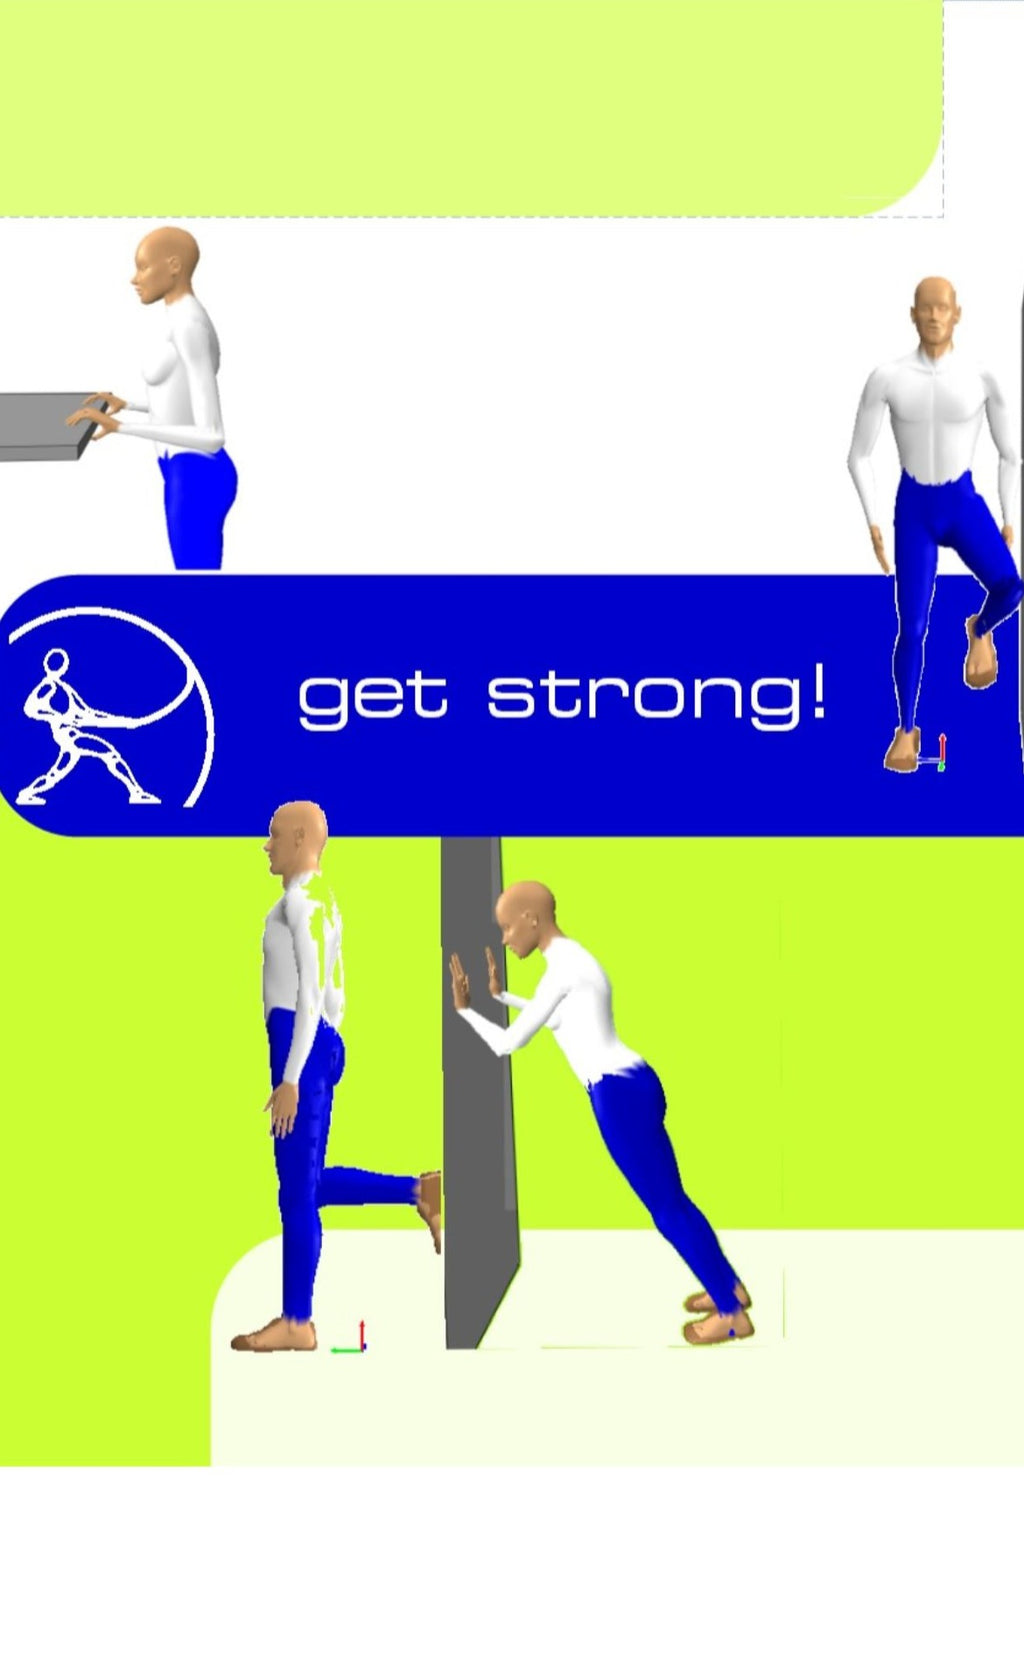 graphic showing mannequins demonstrating strengthening exercises that are promoted on the get strong poster